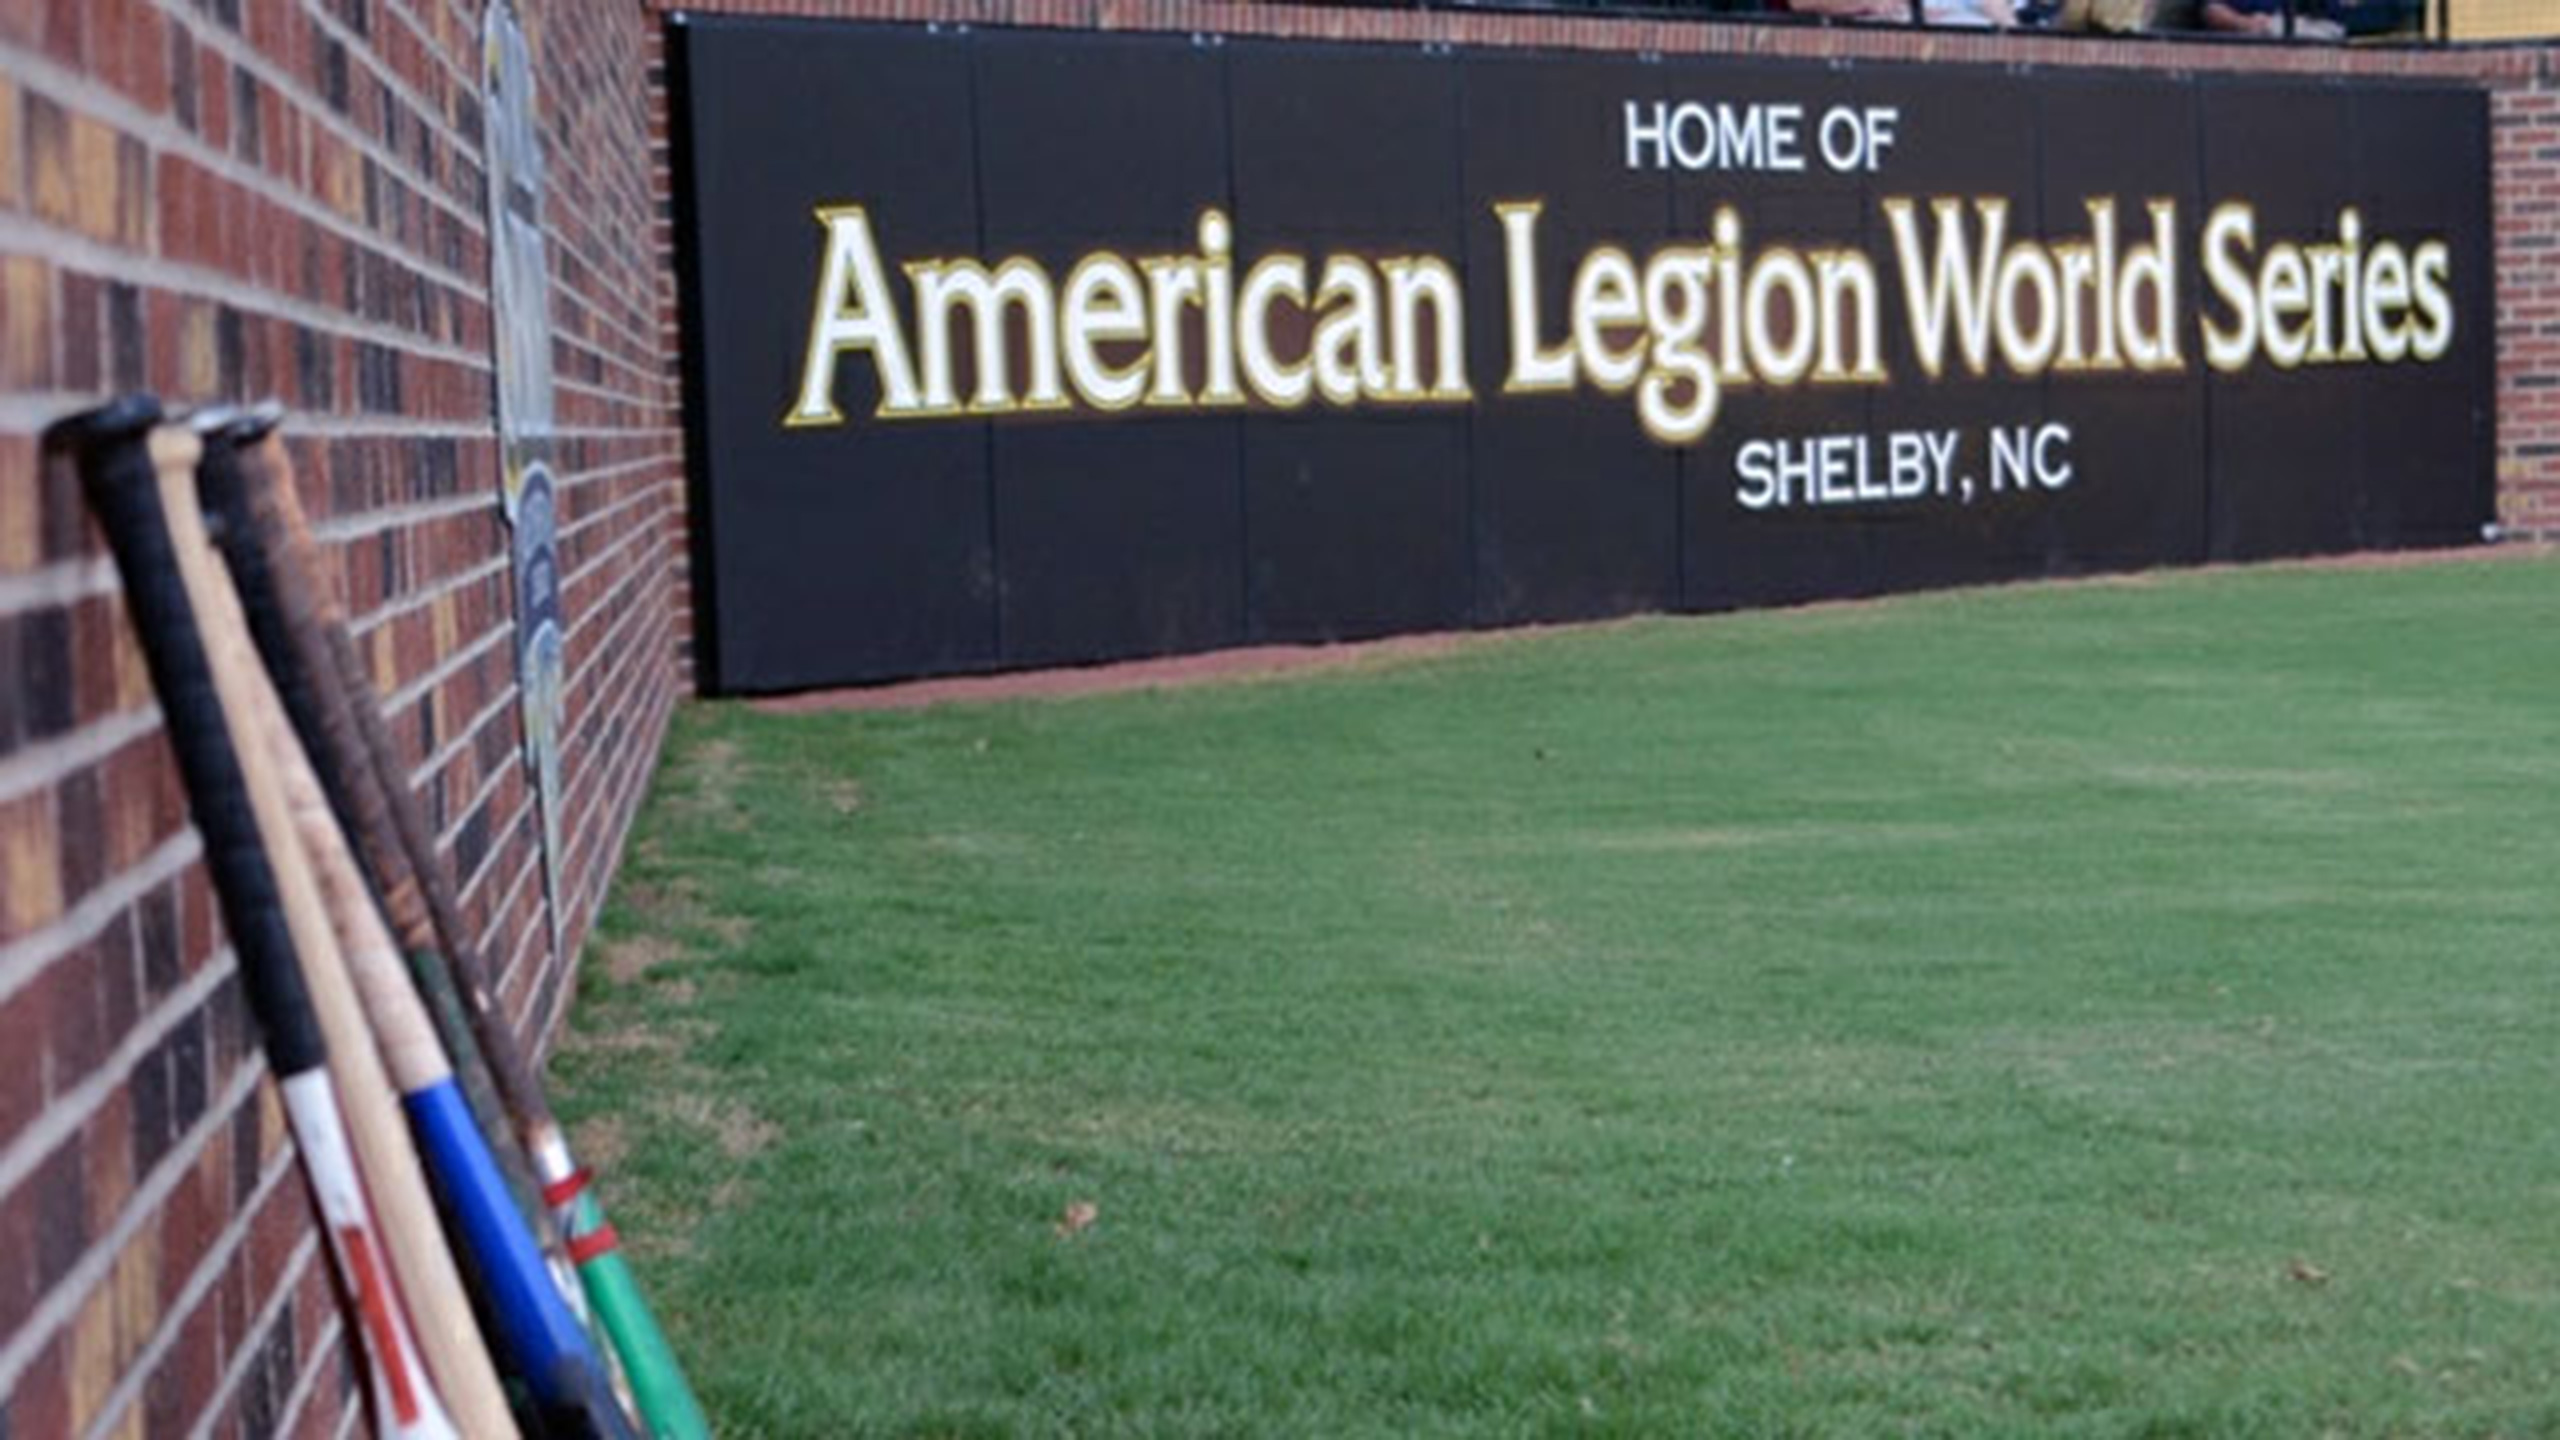 2018 American Legion World Series as part of Summer of Next Presented by GEICO